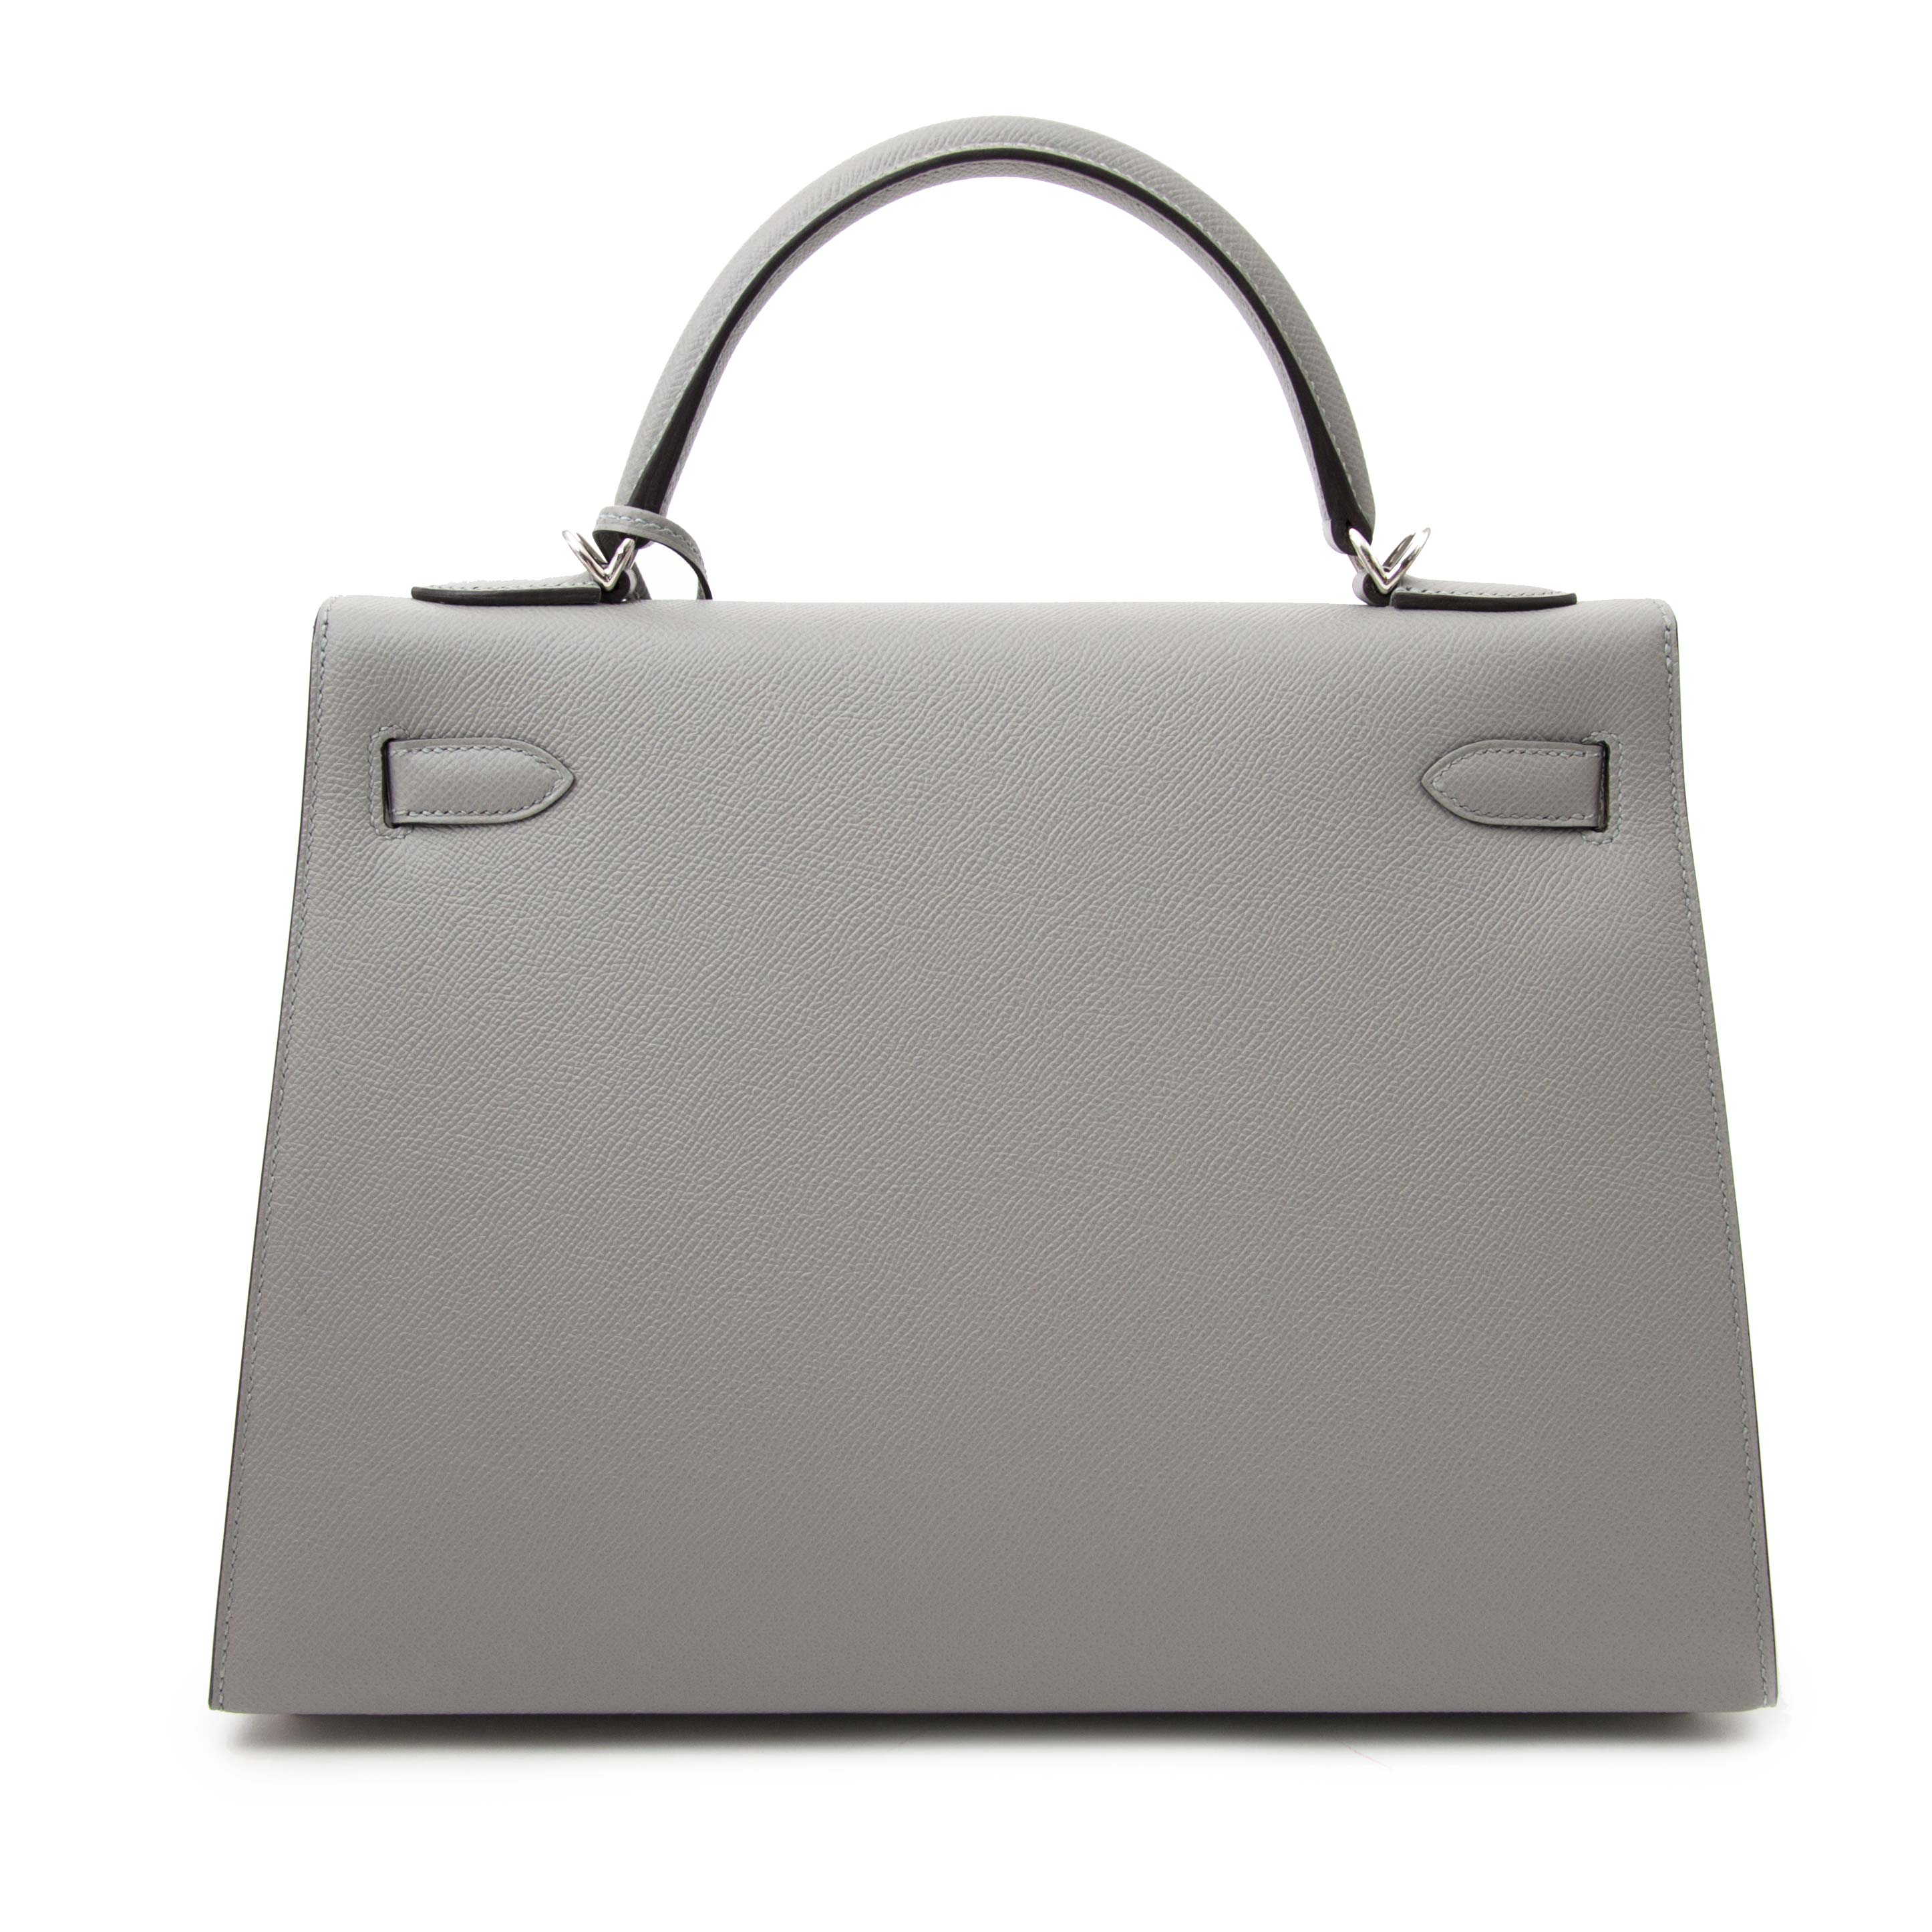 Hermès Kelly Sellier 32 Epsom Gris Mouette PHW for sale in Antwerp www.labellov.com. Labellov sells real designer items, new and vintage.